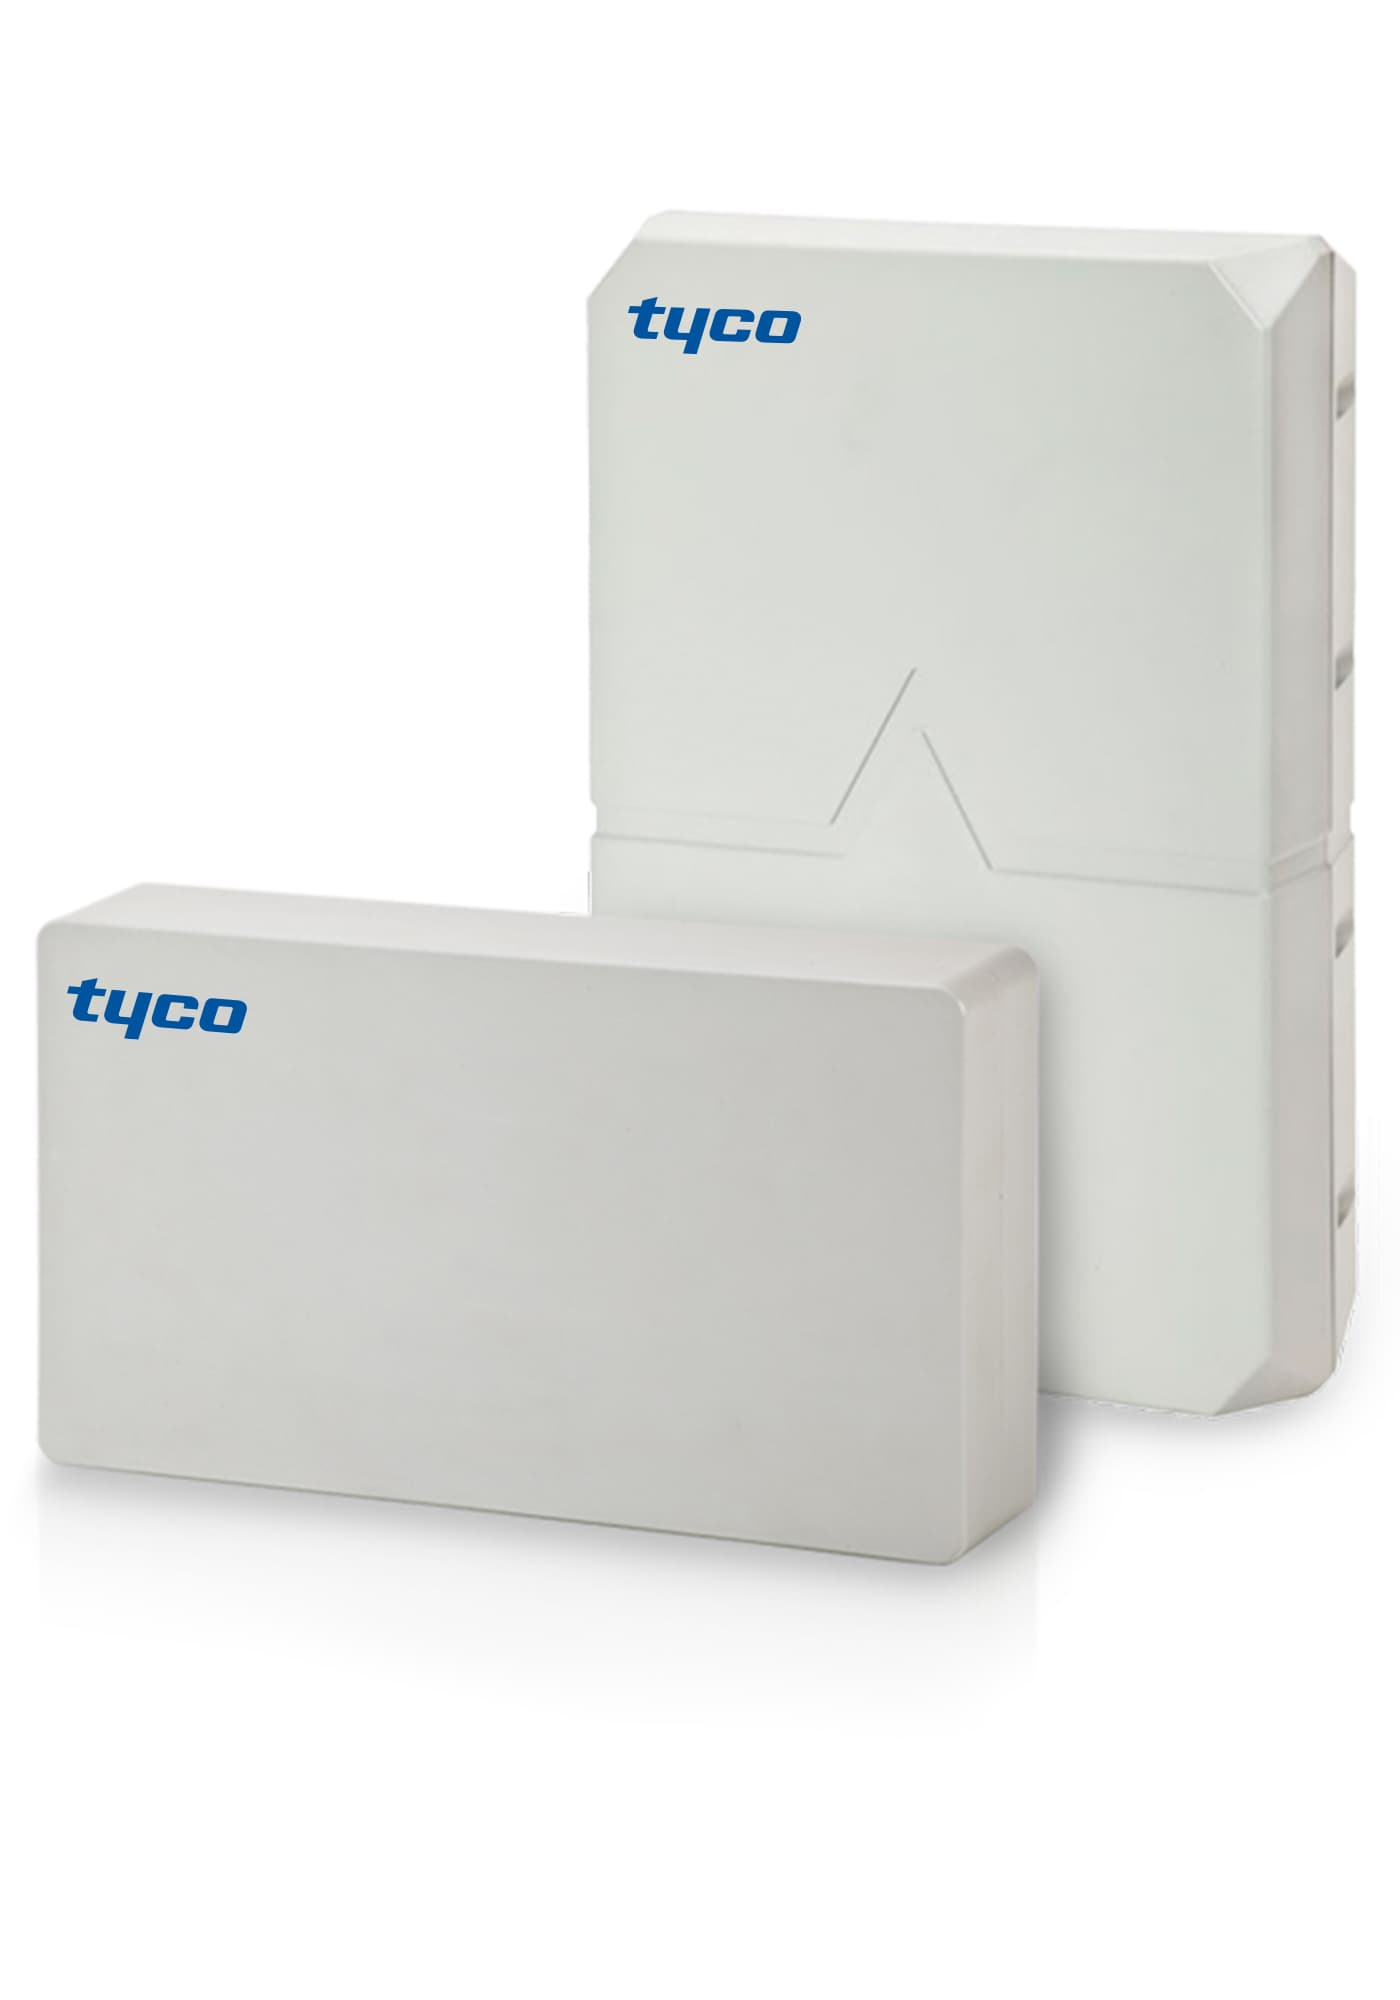 Tyco Radar Detection